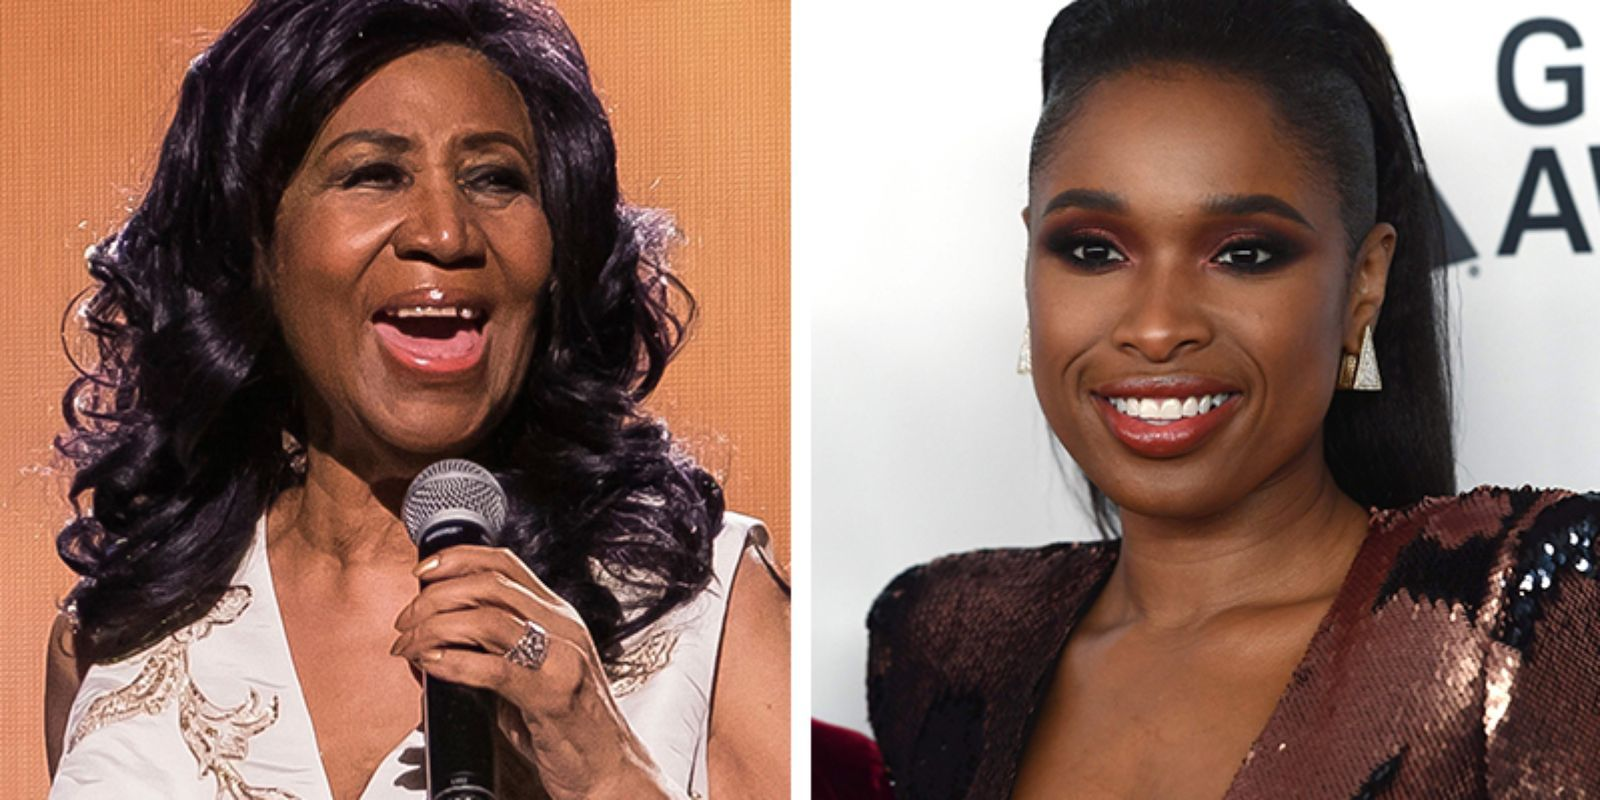 Aretha Franklin and Jennifer Hudson